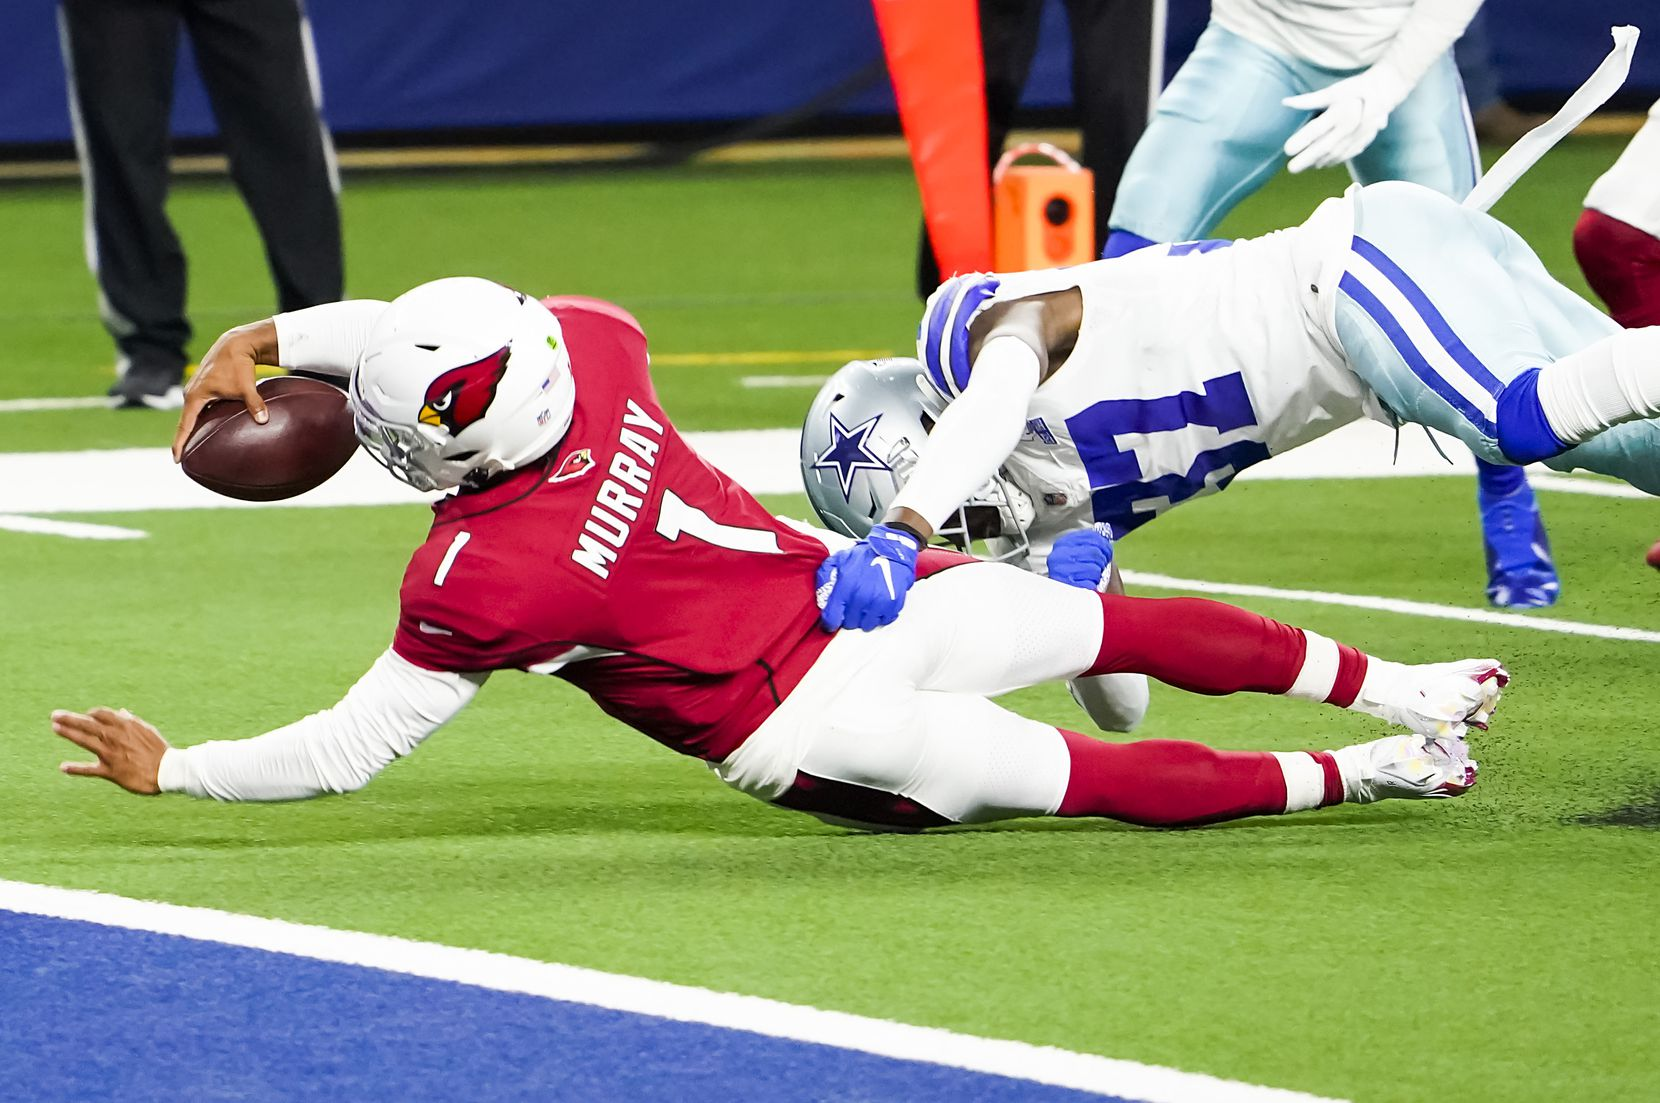 Arizona Cardinals quarterback Kyler Murray (1) dives for the end zone past Dallas Cowboys safety Donovan Wilson (37) during the second quarter of an NFL football game at AT&T Stadium on Monday, Oct. 19, 2020, in Arlington. (Smiley N. Pool/The Dallas Morning News)